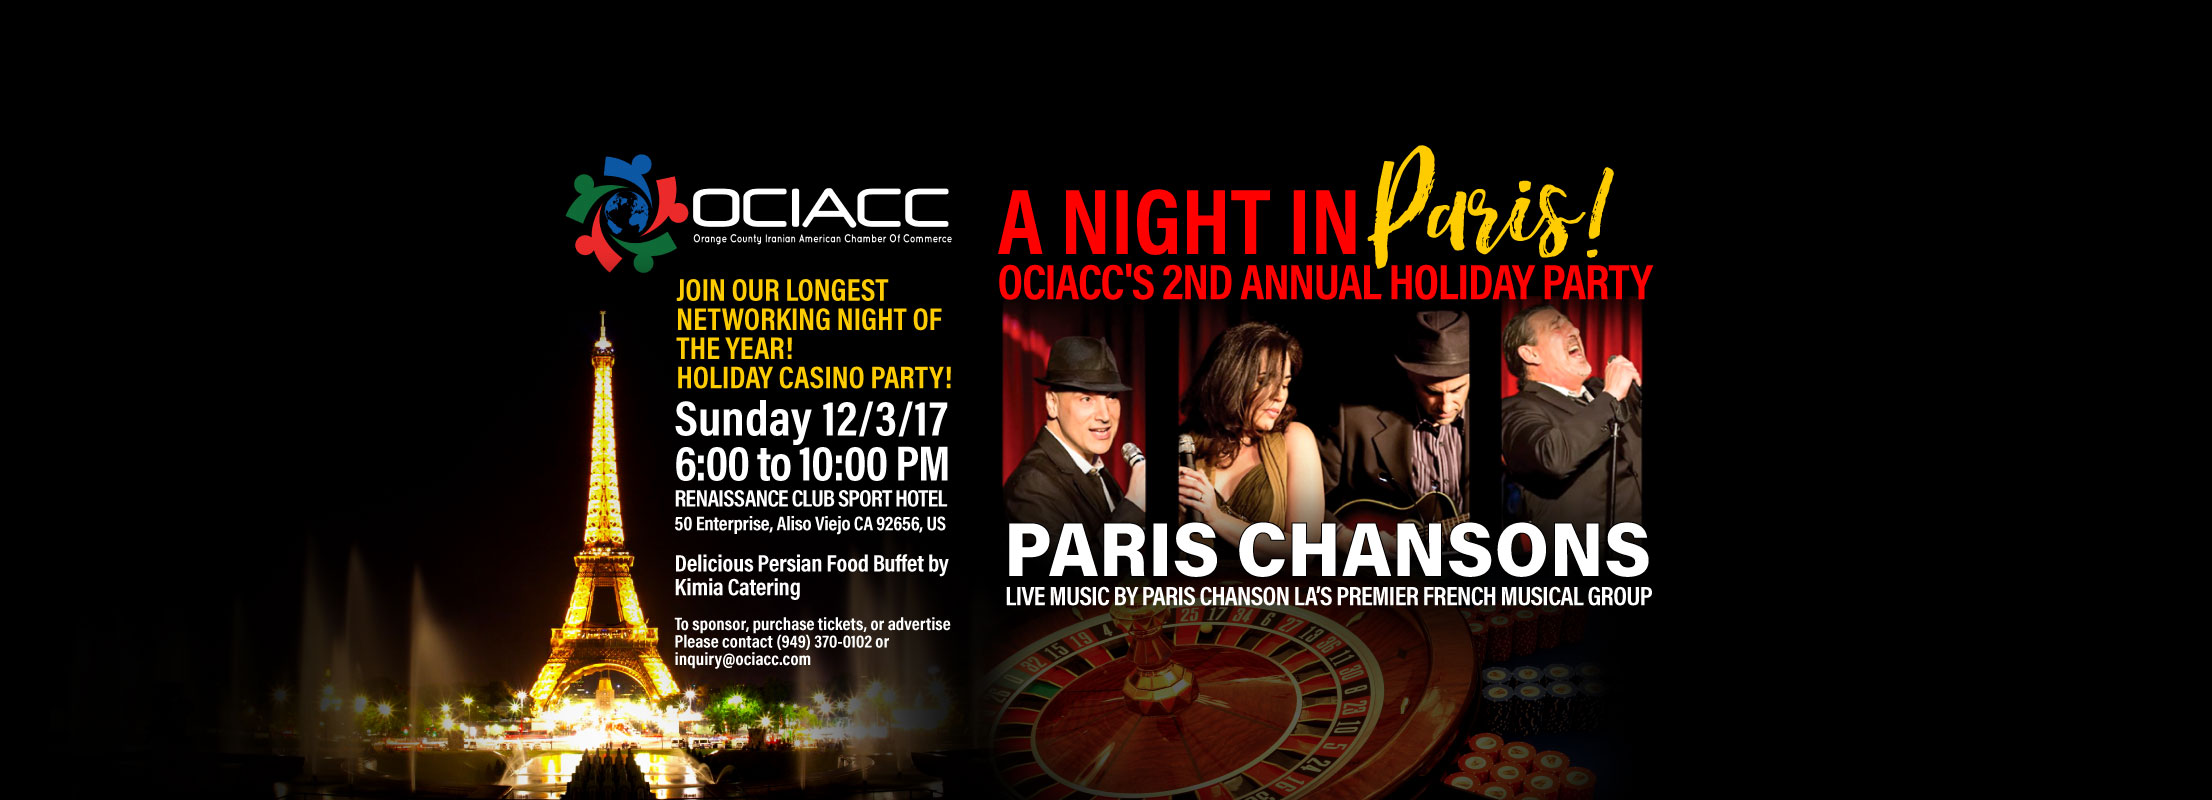 A-Night-in-Paris-Casino-Party-10-04-2017